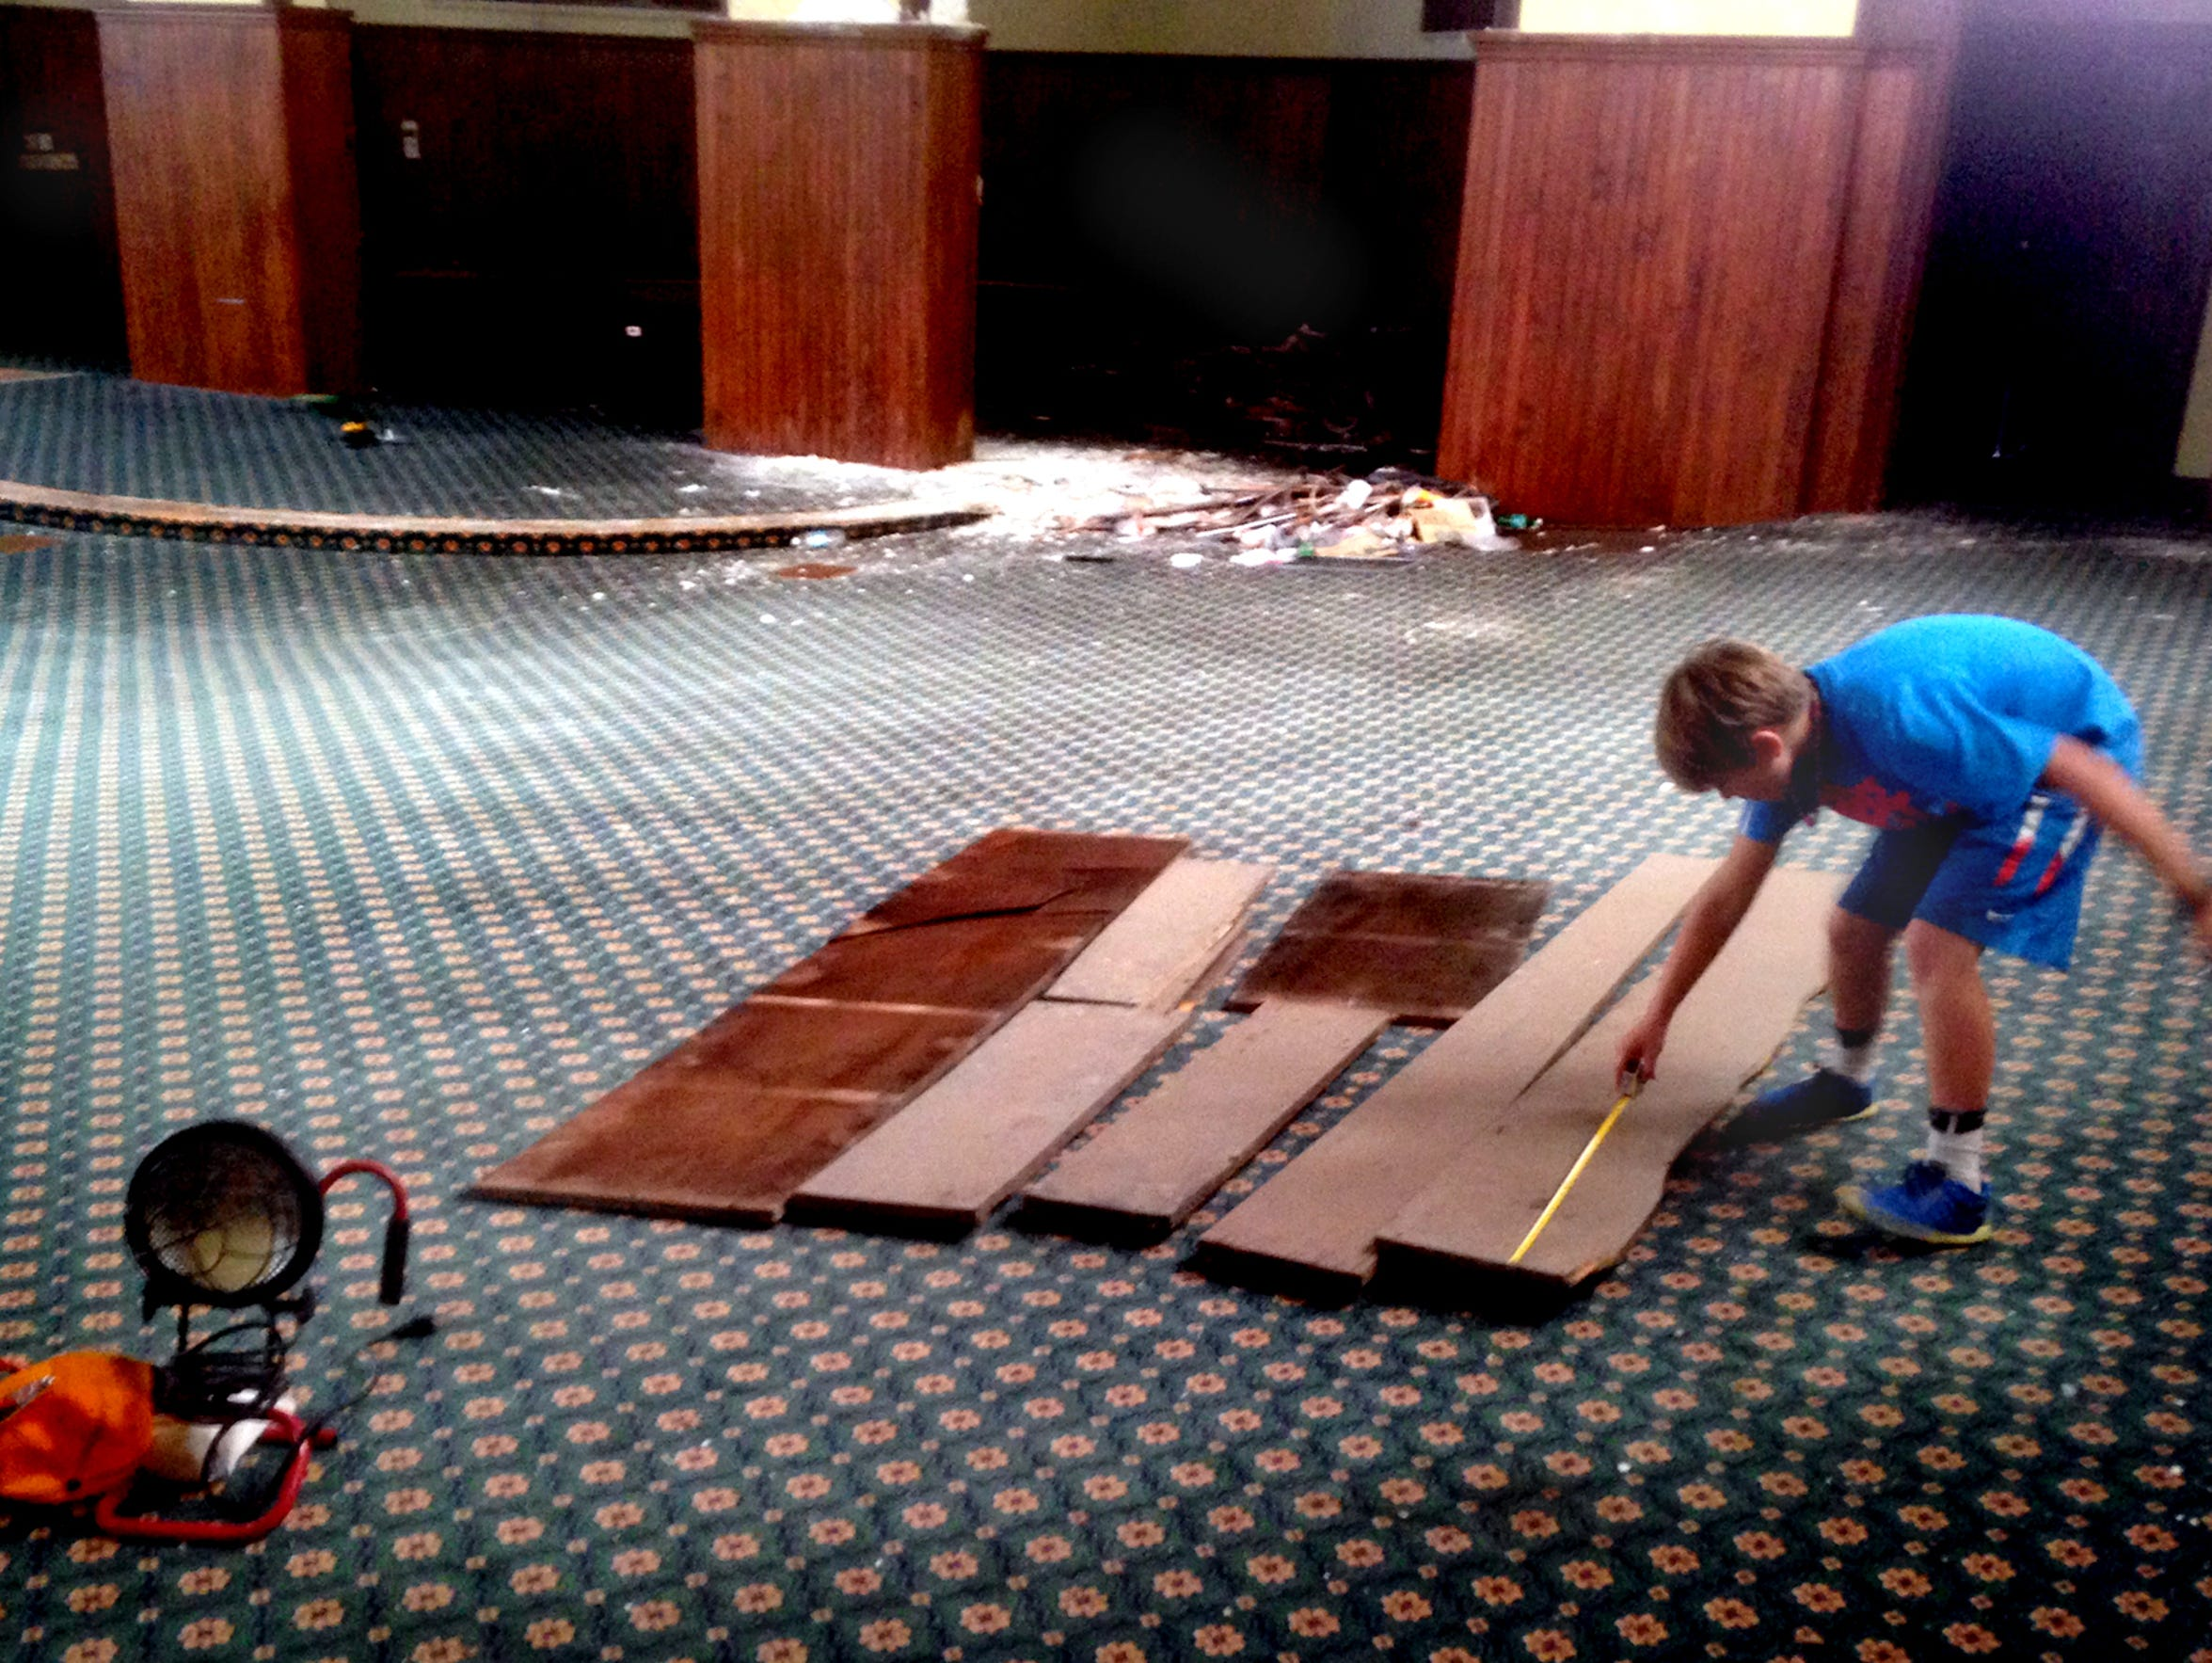 Andrew Gaines, 10, measures boards on the former sanctuary